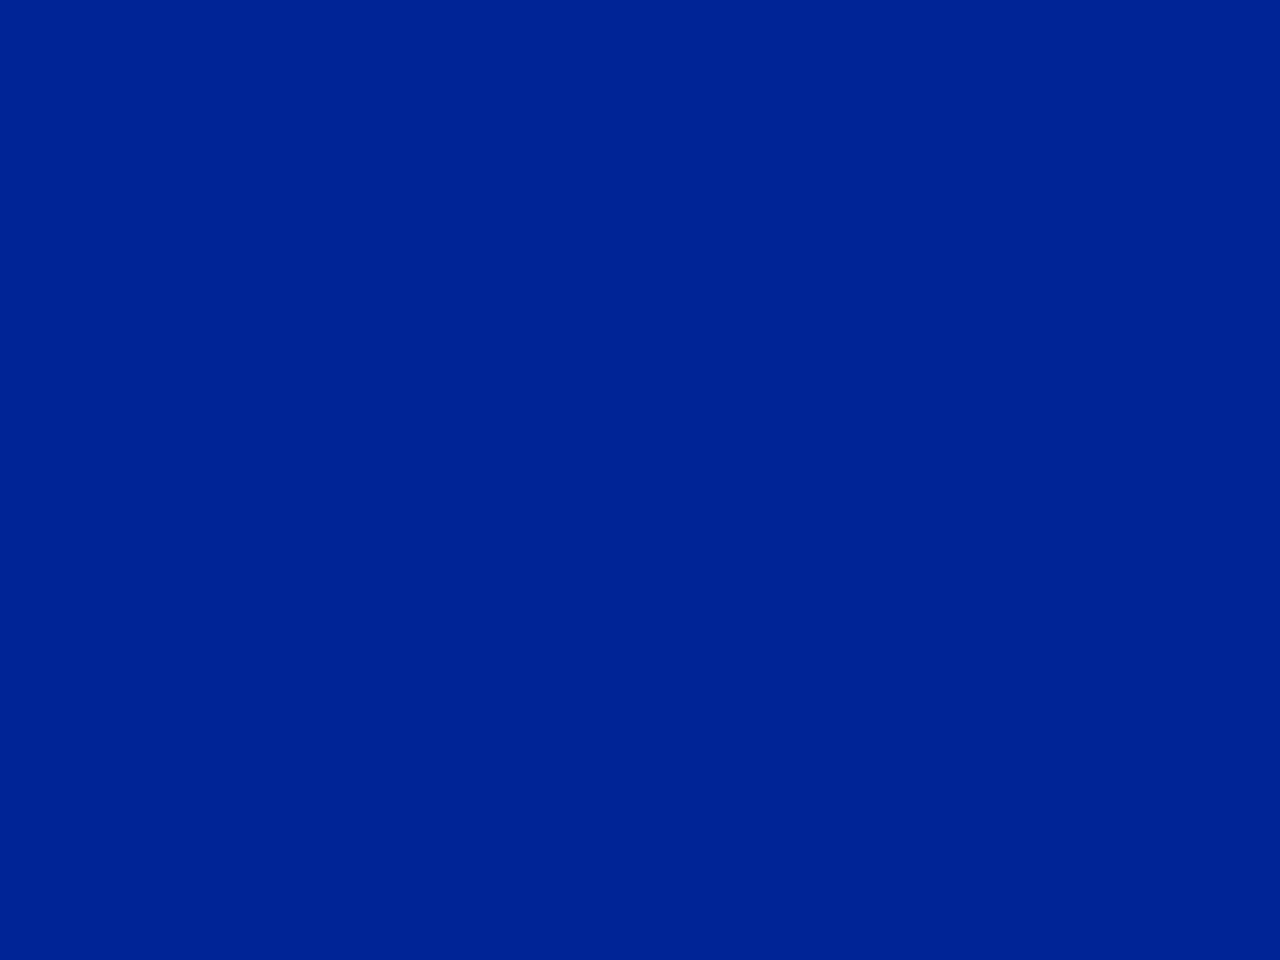 1280x960 Imperial Blue Solid Color Background